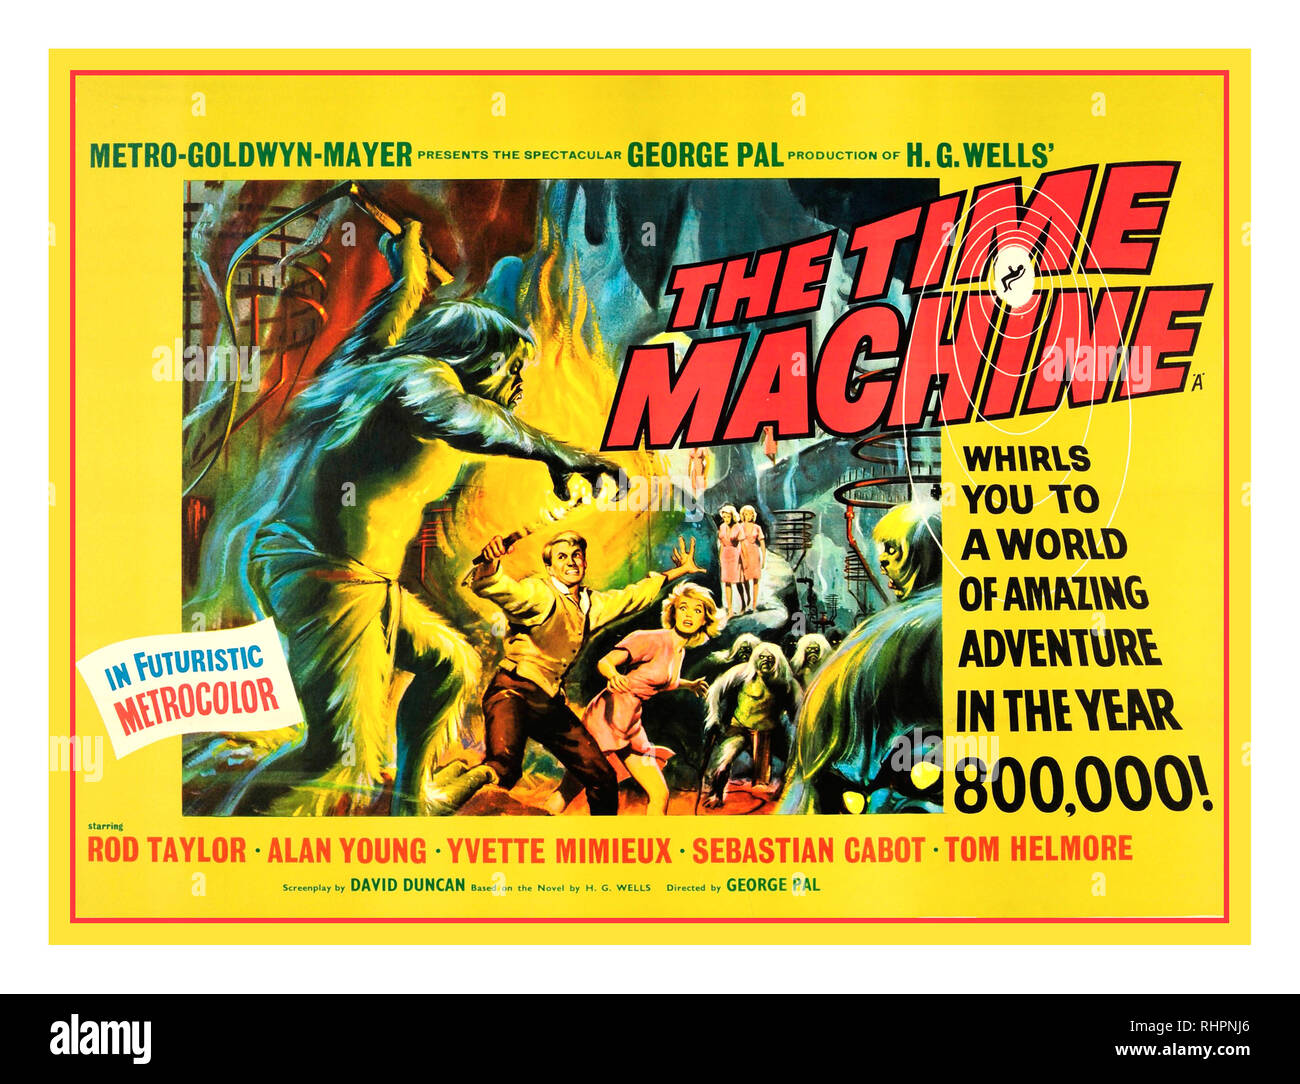 1960 Vintage Science Fiction Movie Film Poster for 'The Time Machine' by H.G. Wells The Time Machine (also known promotionally as H. G. Wells' The Time Machine) is a 1960 American science fiction film in Metrocolor from Metro-Goldwyn-Mayer, produced and directed by George Pal, that stars Rod Taylor, Yvette Mimieux, and Alan Young. - Stock Image